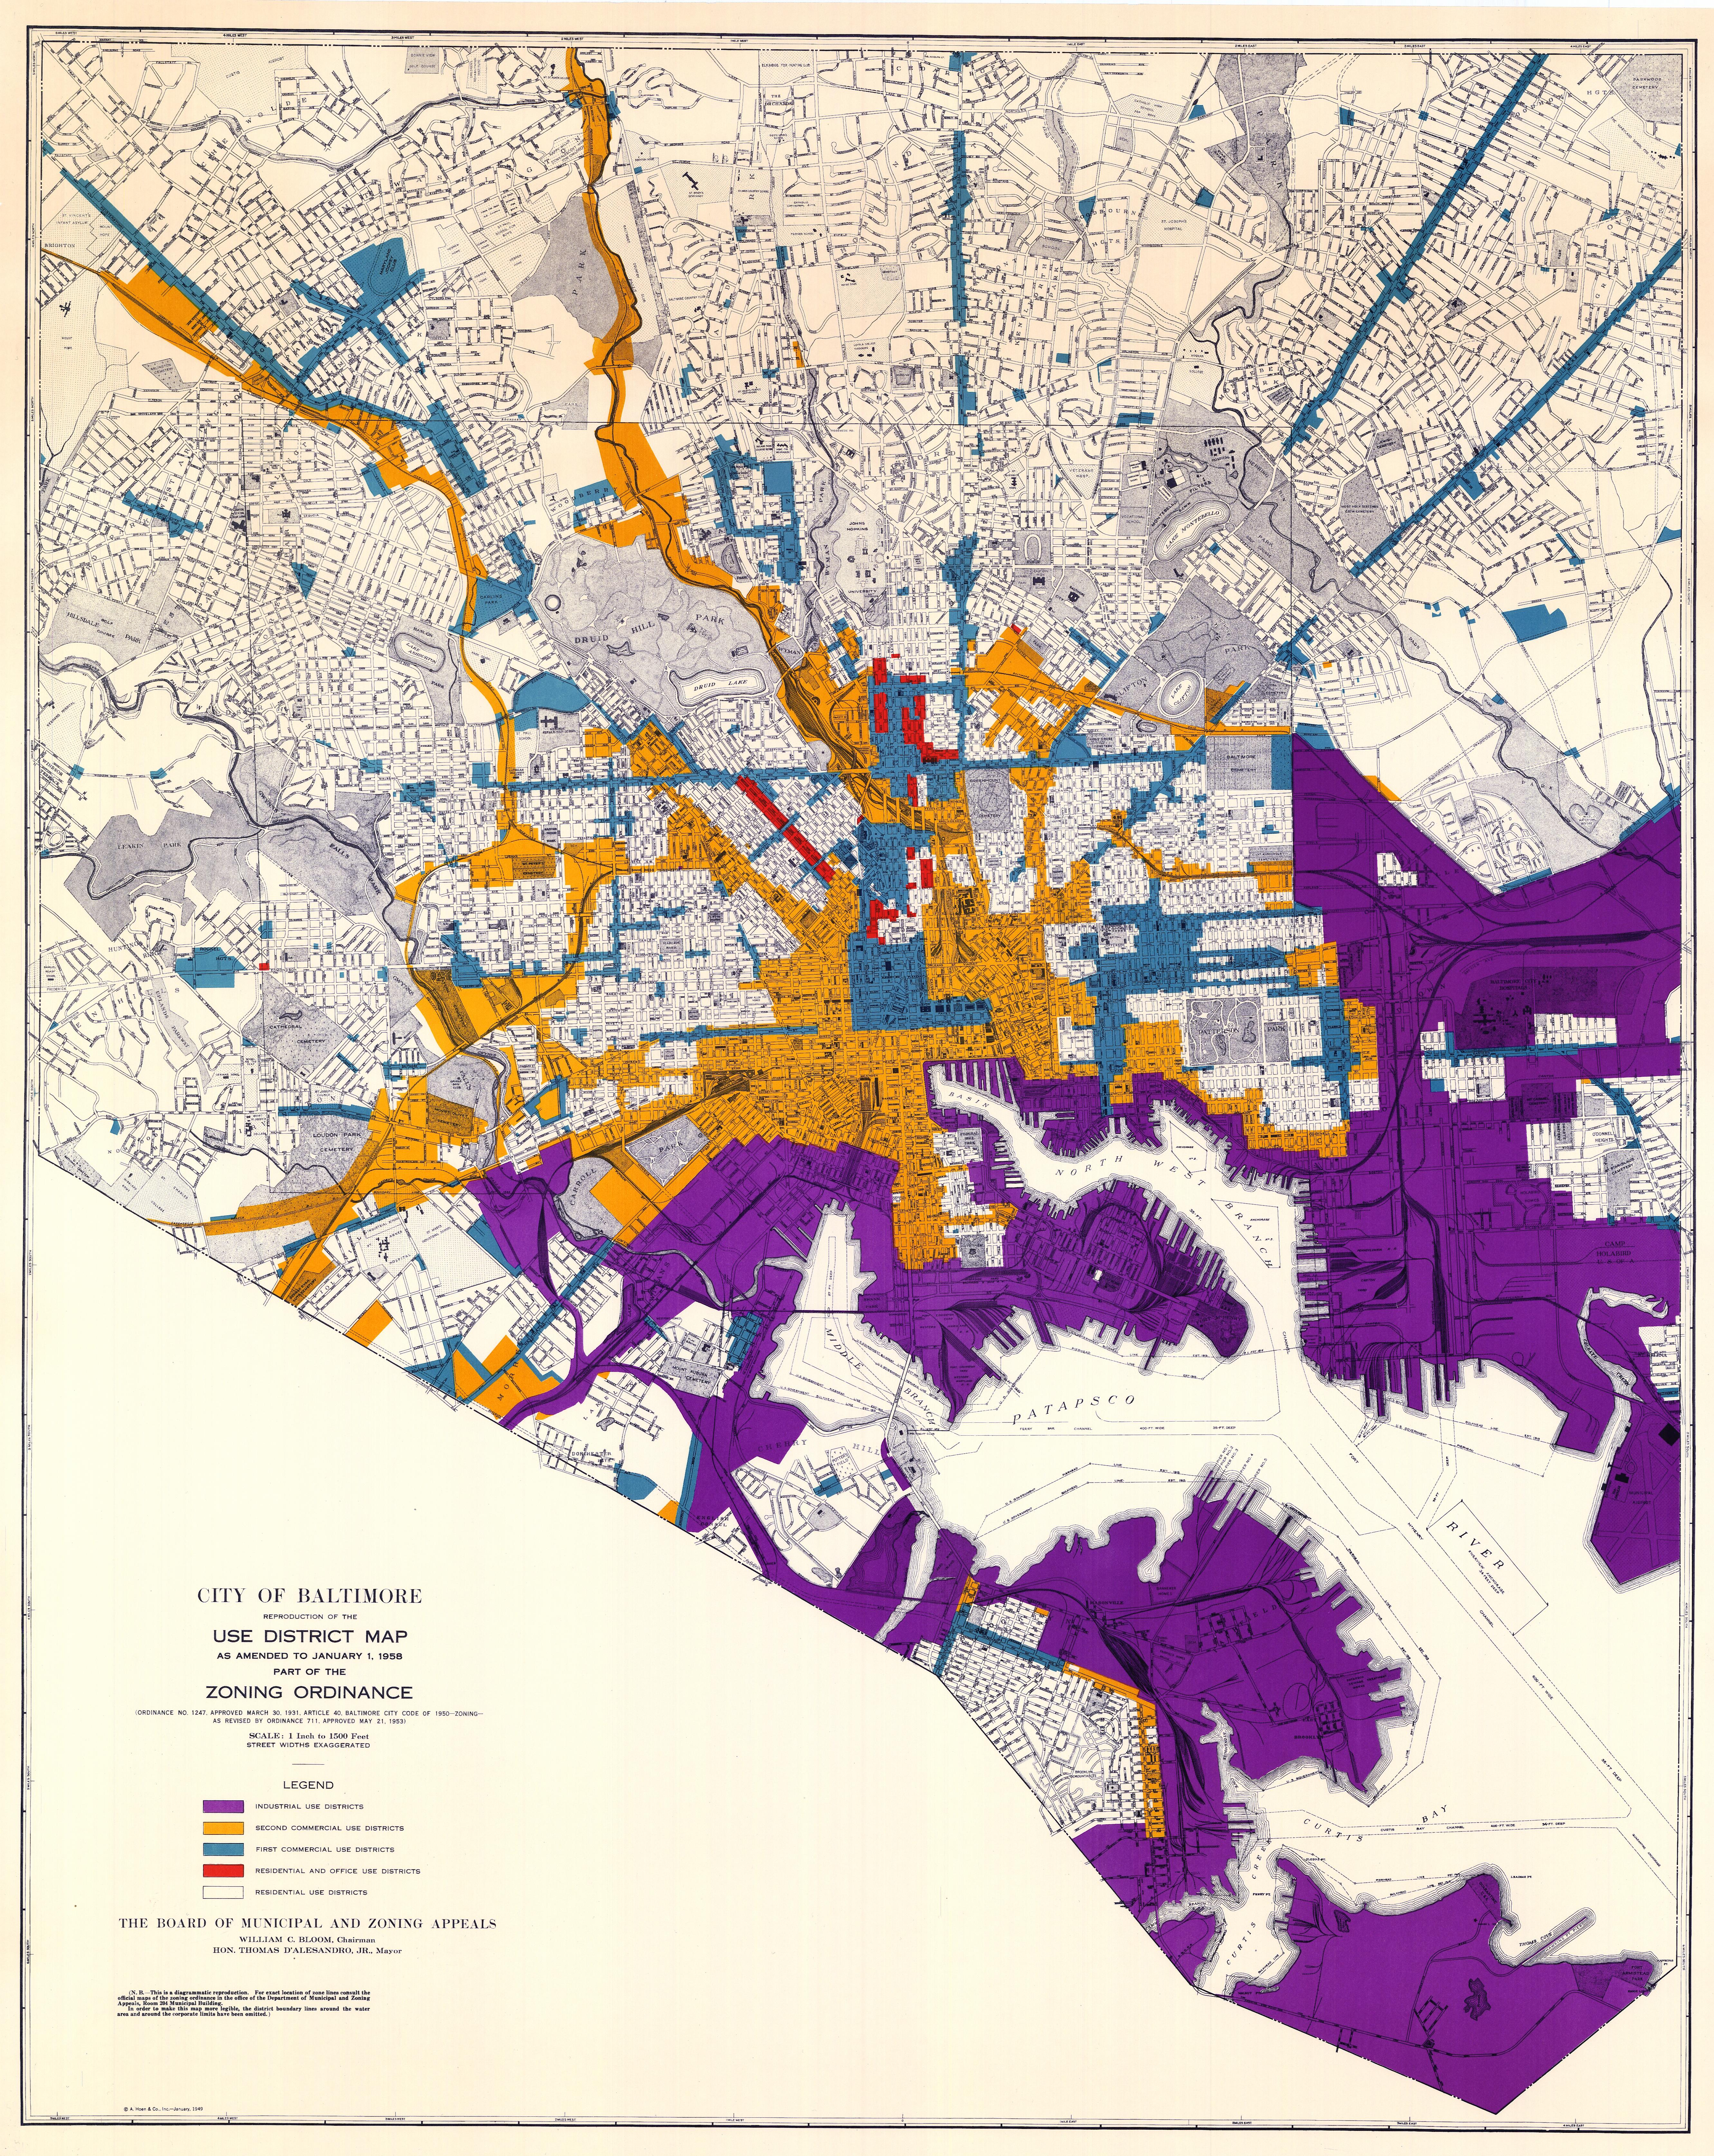 Baltimore Zoning Map City of Baltimore, Reproduction of the Use District Map as Amended